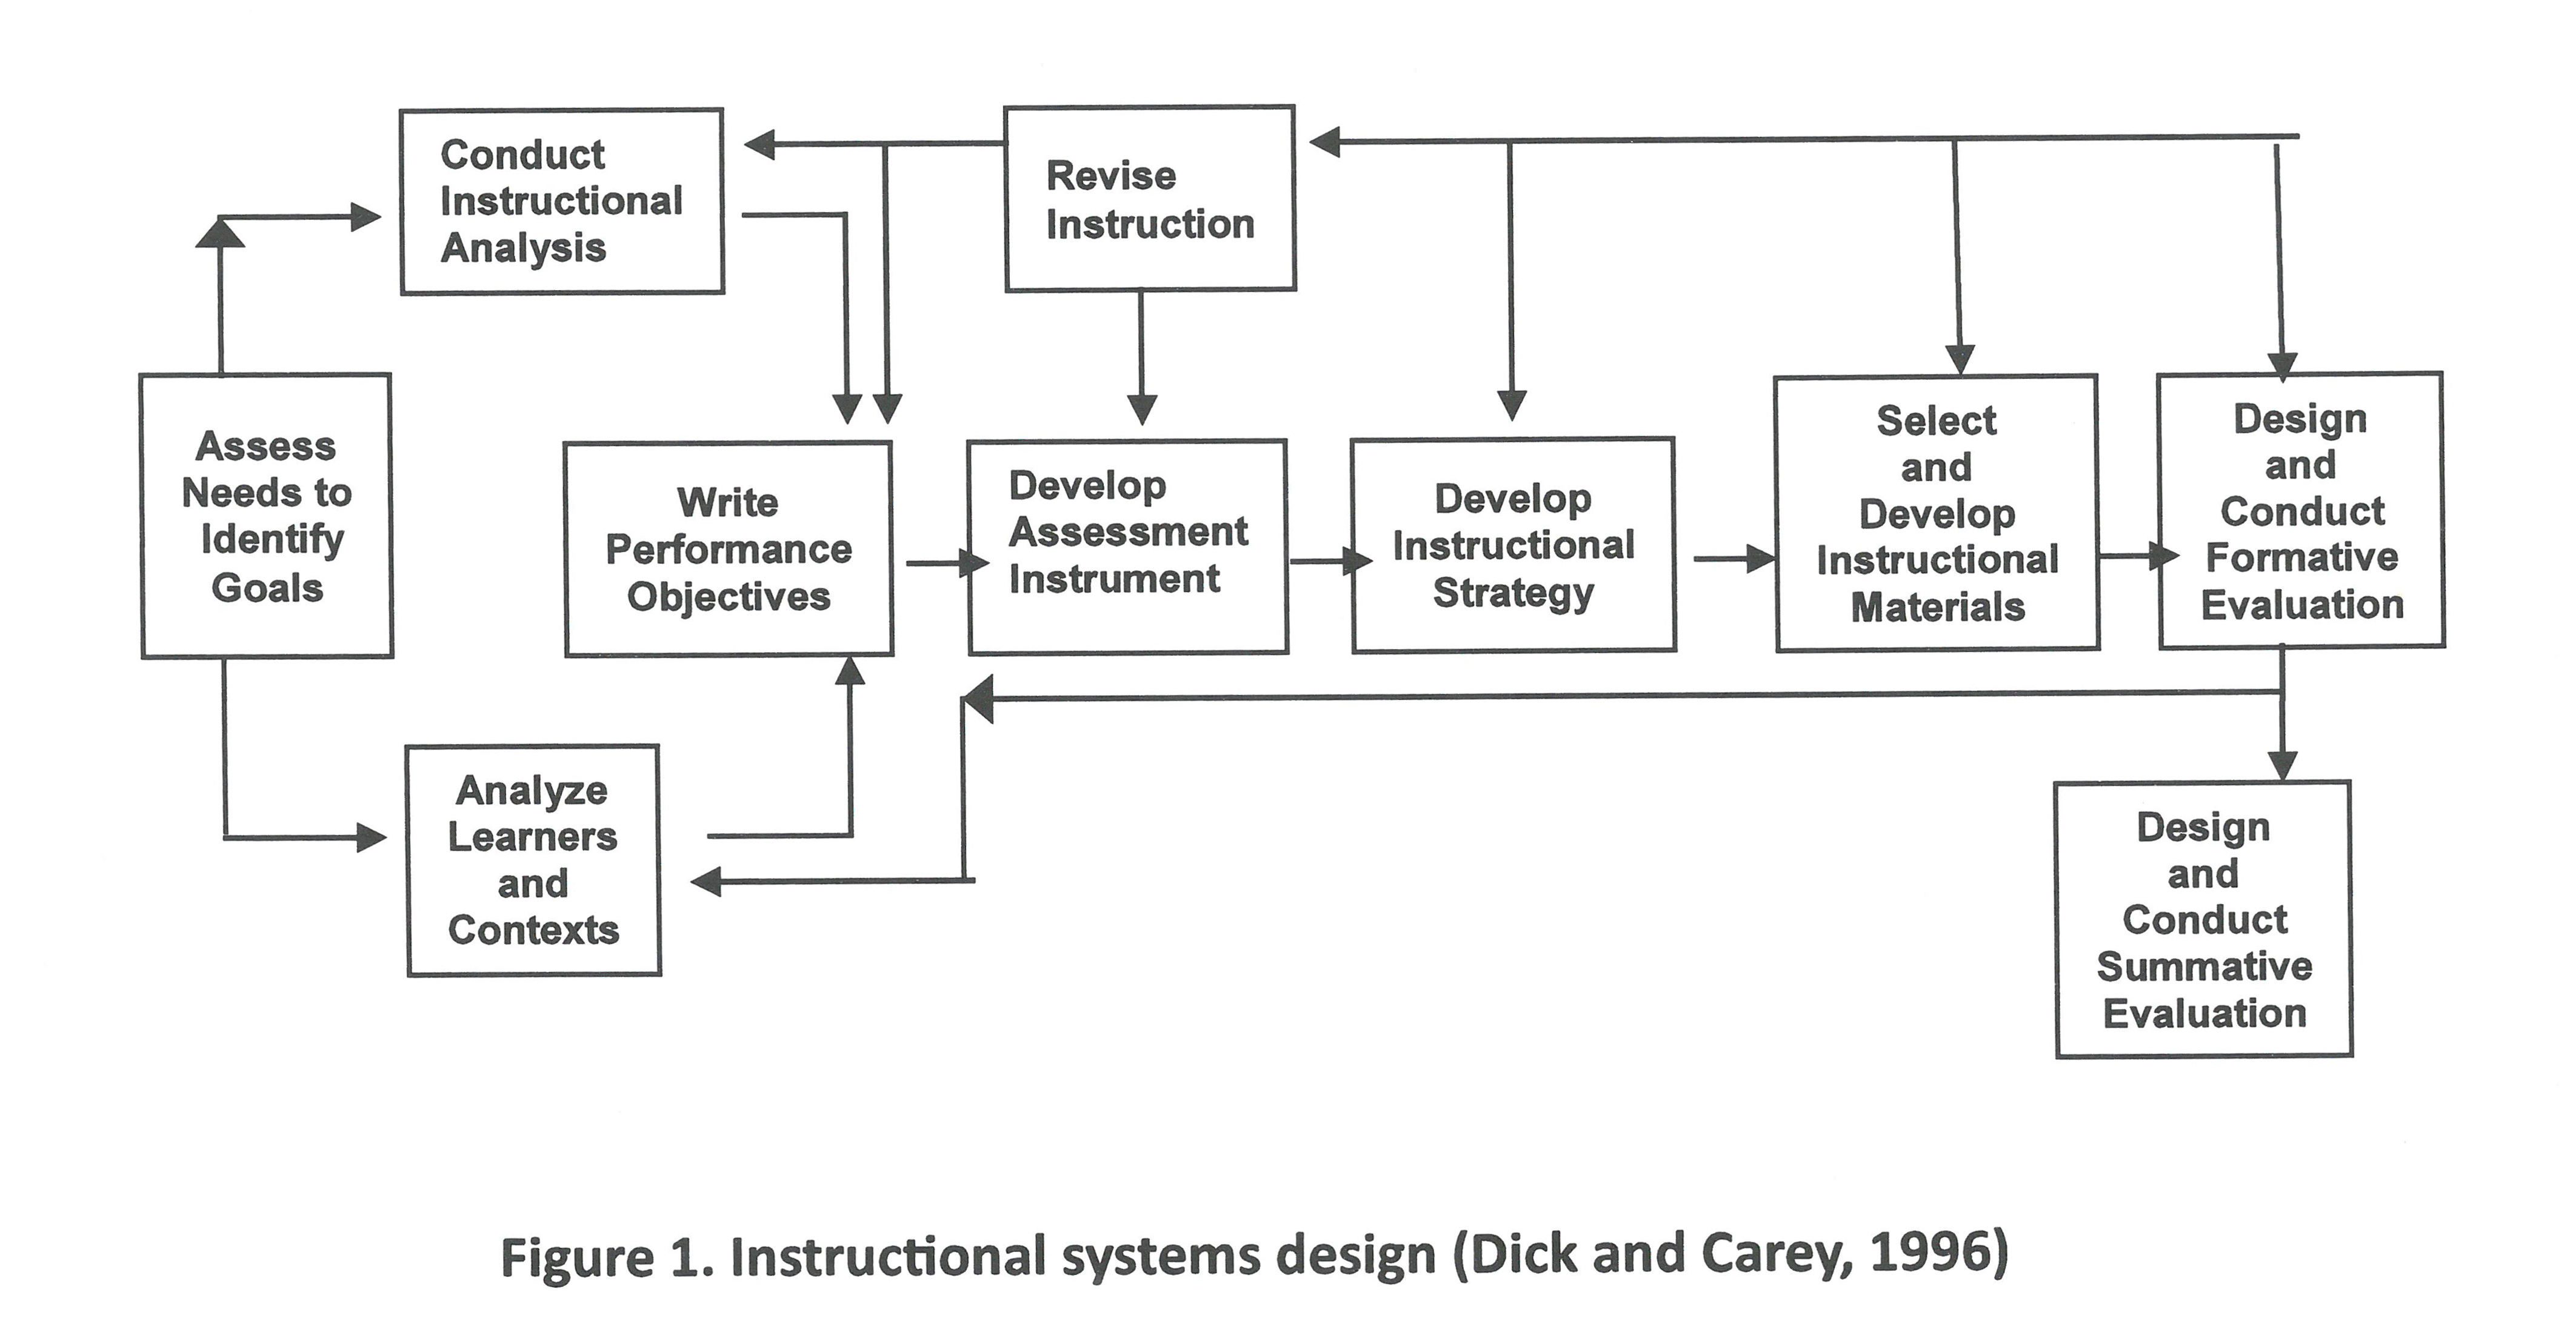 Instructional systems design (Dick and Carey, 1996)